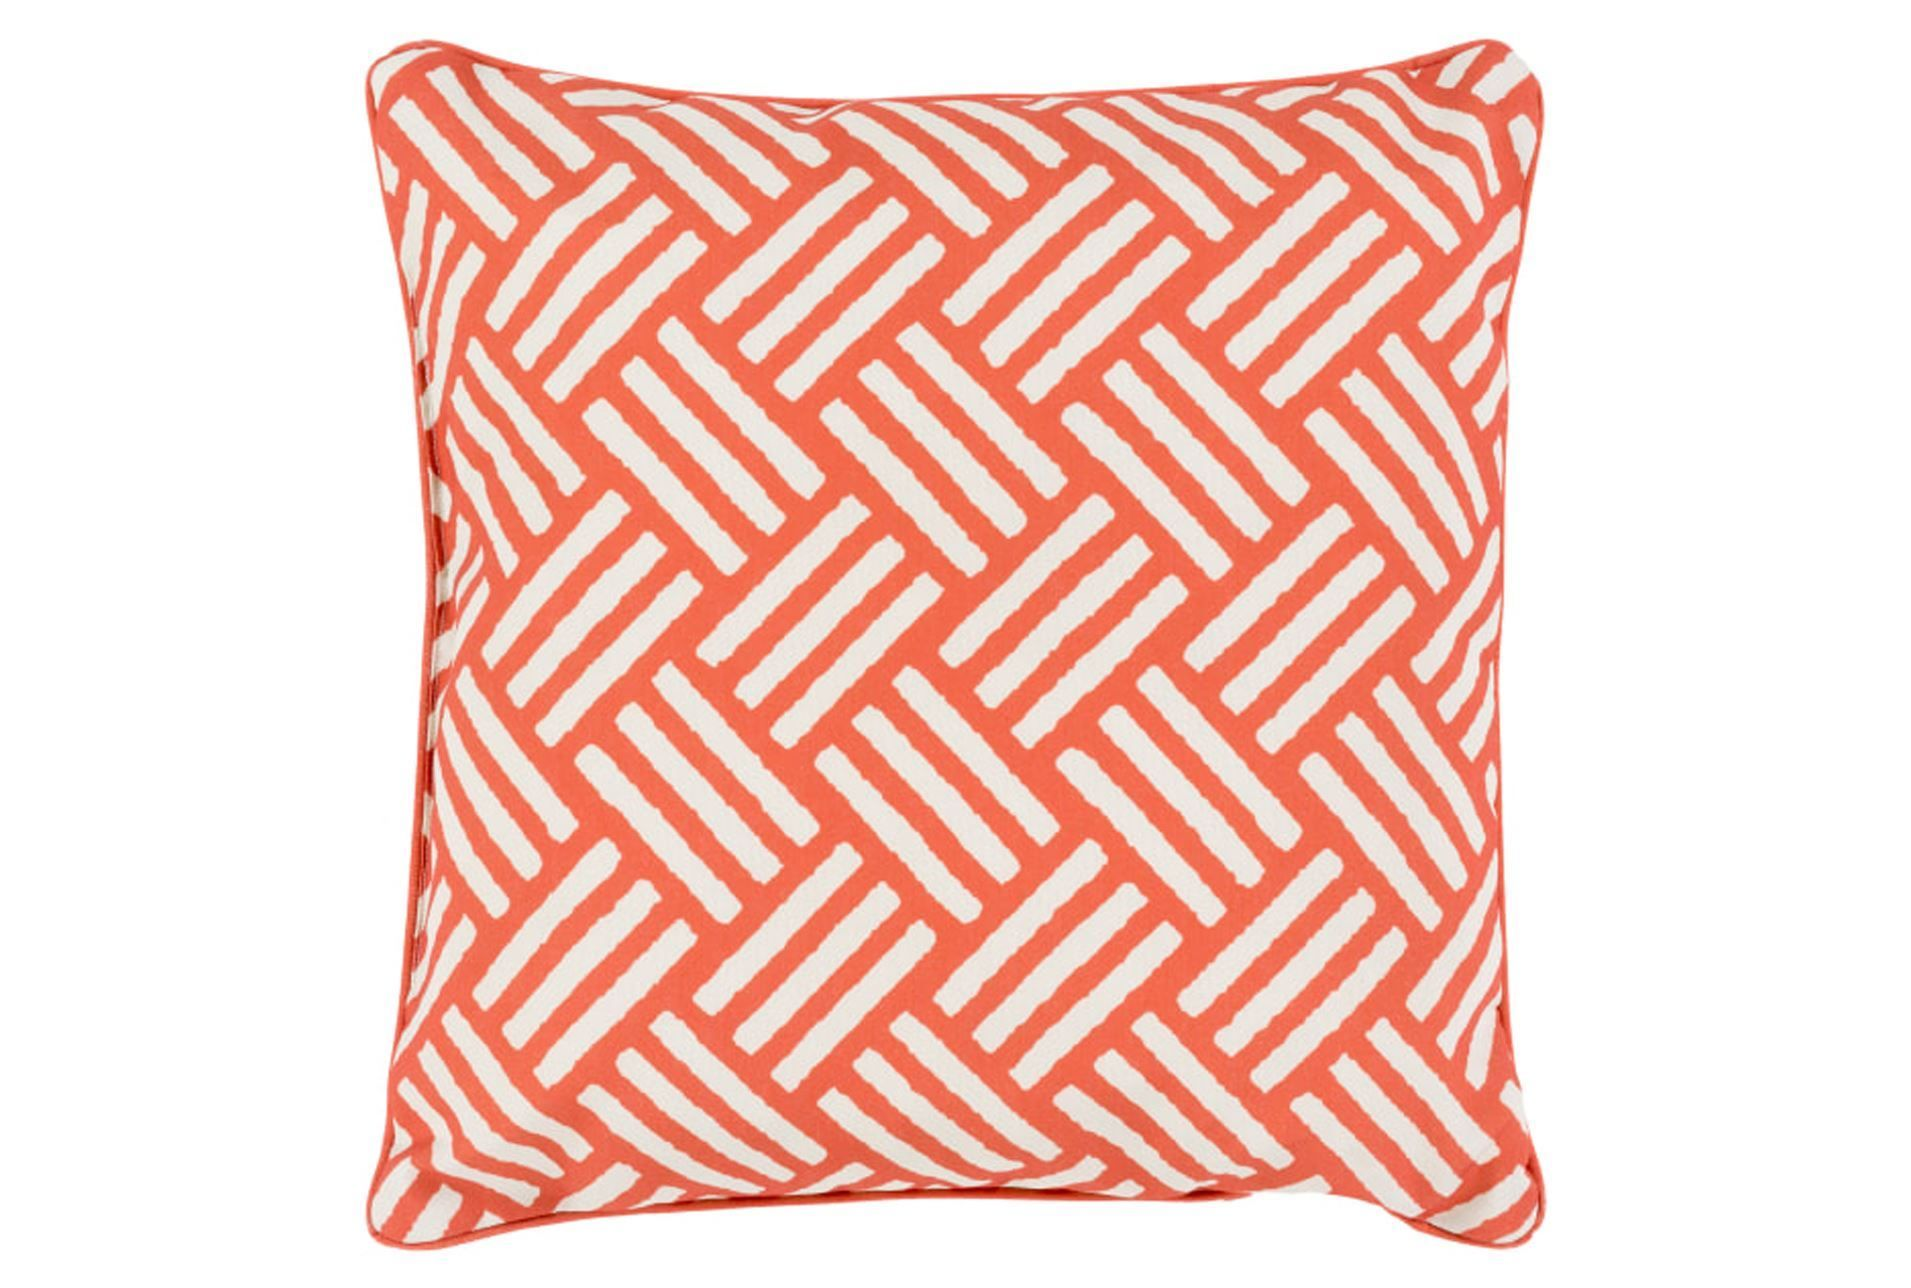 Accent Pillow Crossweave Geo Rust Ivory 20x20 In 2020 Geometric Throw Pillows Throw Pillows Outdoor Throw Pillows